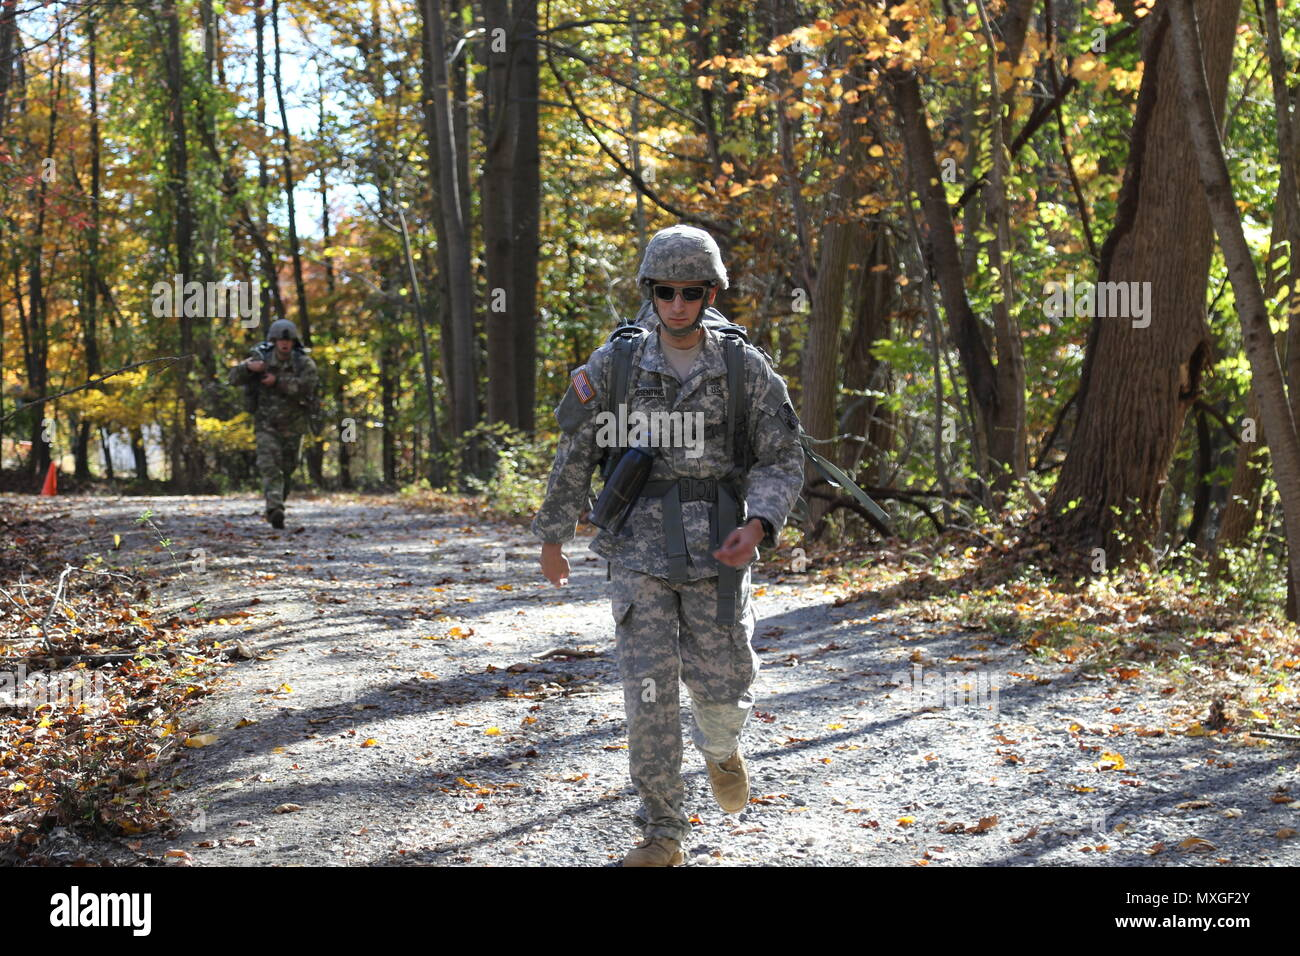 Soldier from the 58th Expeditionary Military Intelligence Brigade (EMIB) competed in the Soldier and Noncommissioned Officer and Company Grade Officer of the Year Competition, Nov. 5 at Gunpowder Military Reservation, Md. The day-long competition tested Soldiers on numerous warrior tasks and finalized with a seven mile ruck march and live-fire stress shoot. (Photos by Sgt. Devon Bistarkey, 58th EMIB Public Affairs) - Stock Image